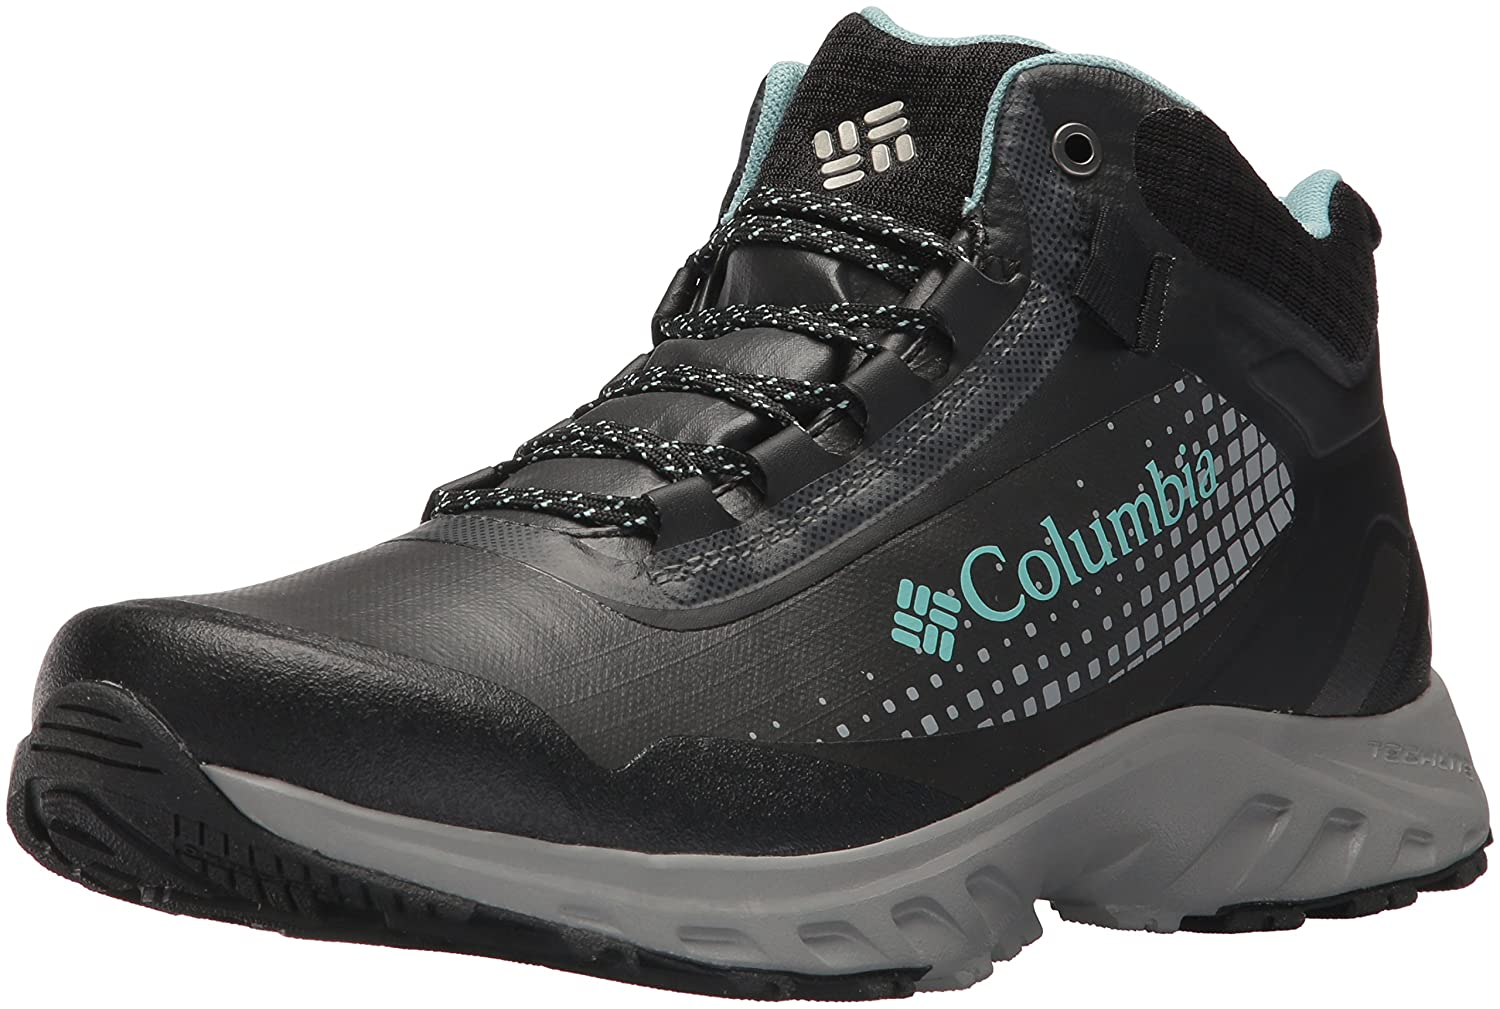 Columbia Women's Irrigon Trail Boot Mid Outdry Xtrm Hiking Boot Trail B073RNRK9N 10 B(M) US|Black, Iceberg 455ae8